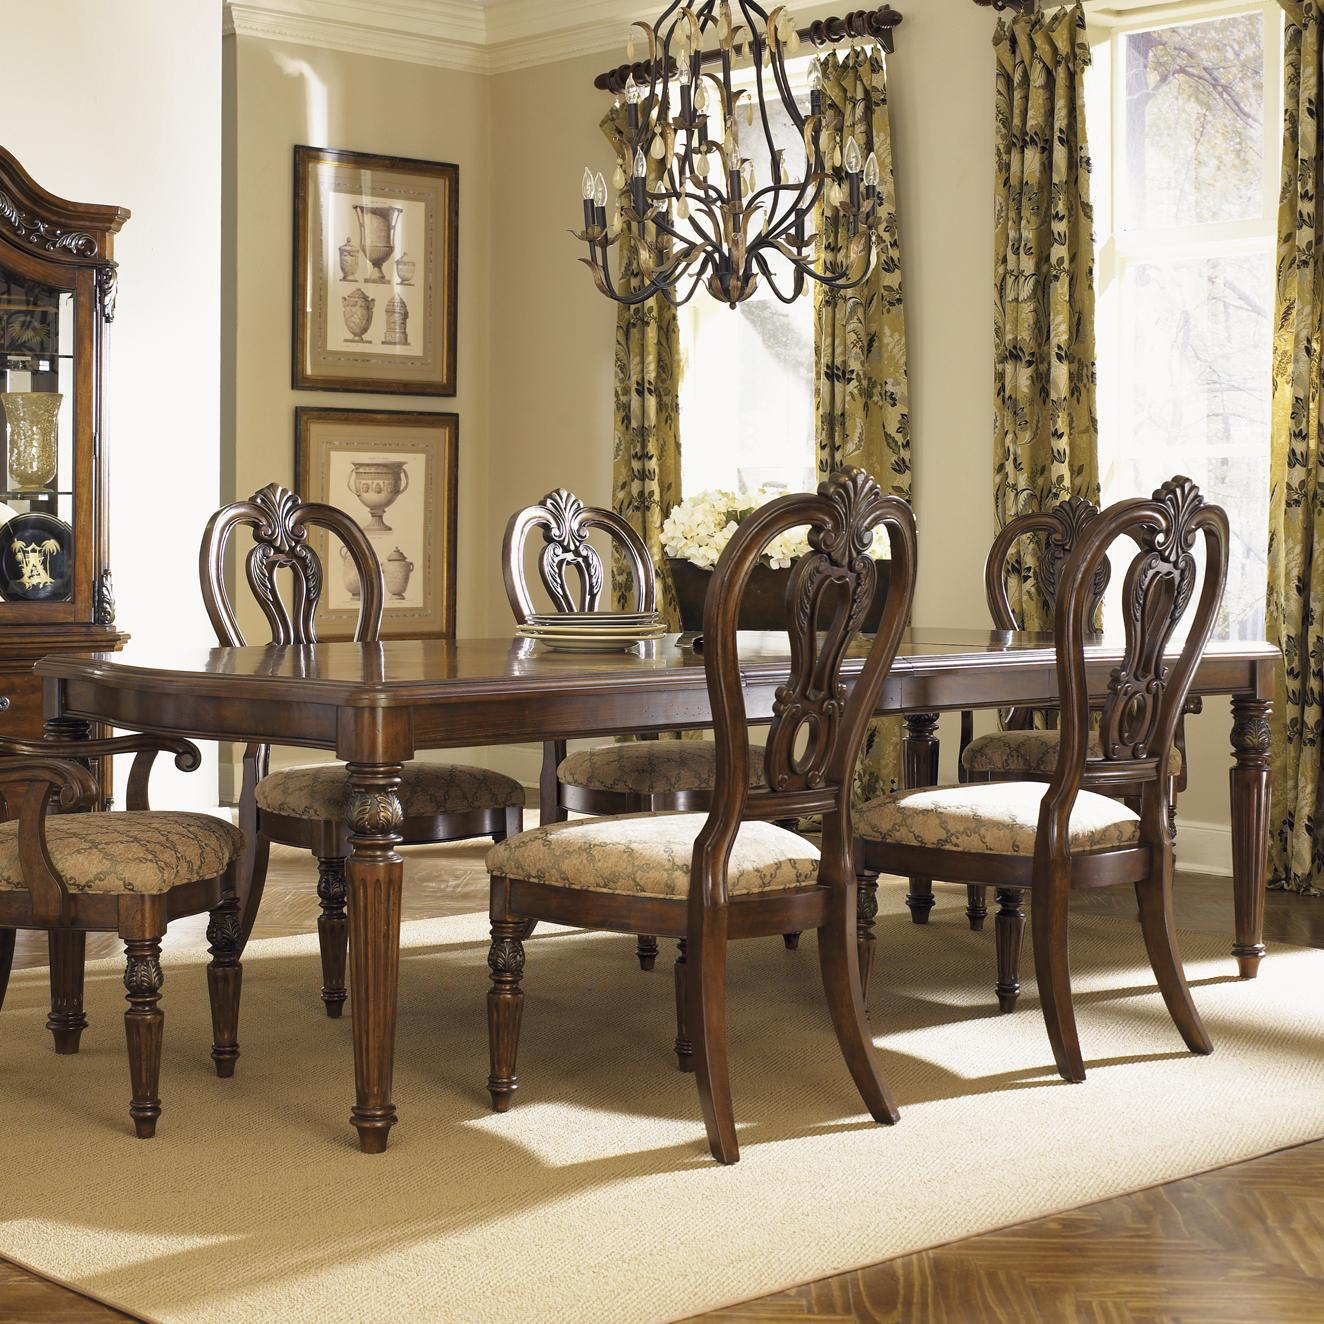 Liberty Furniture Messina Estates Dining Table - Item Number: 737-T4408